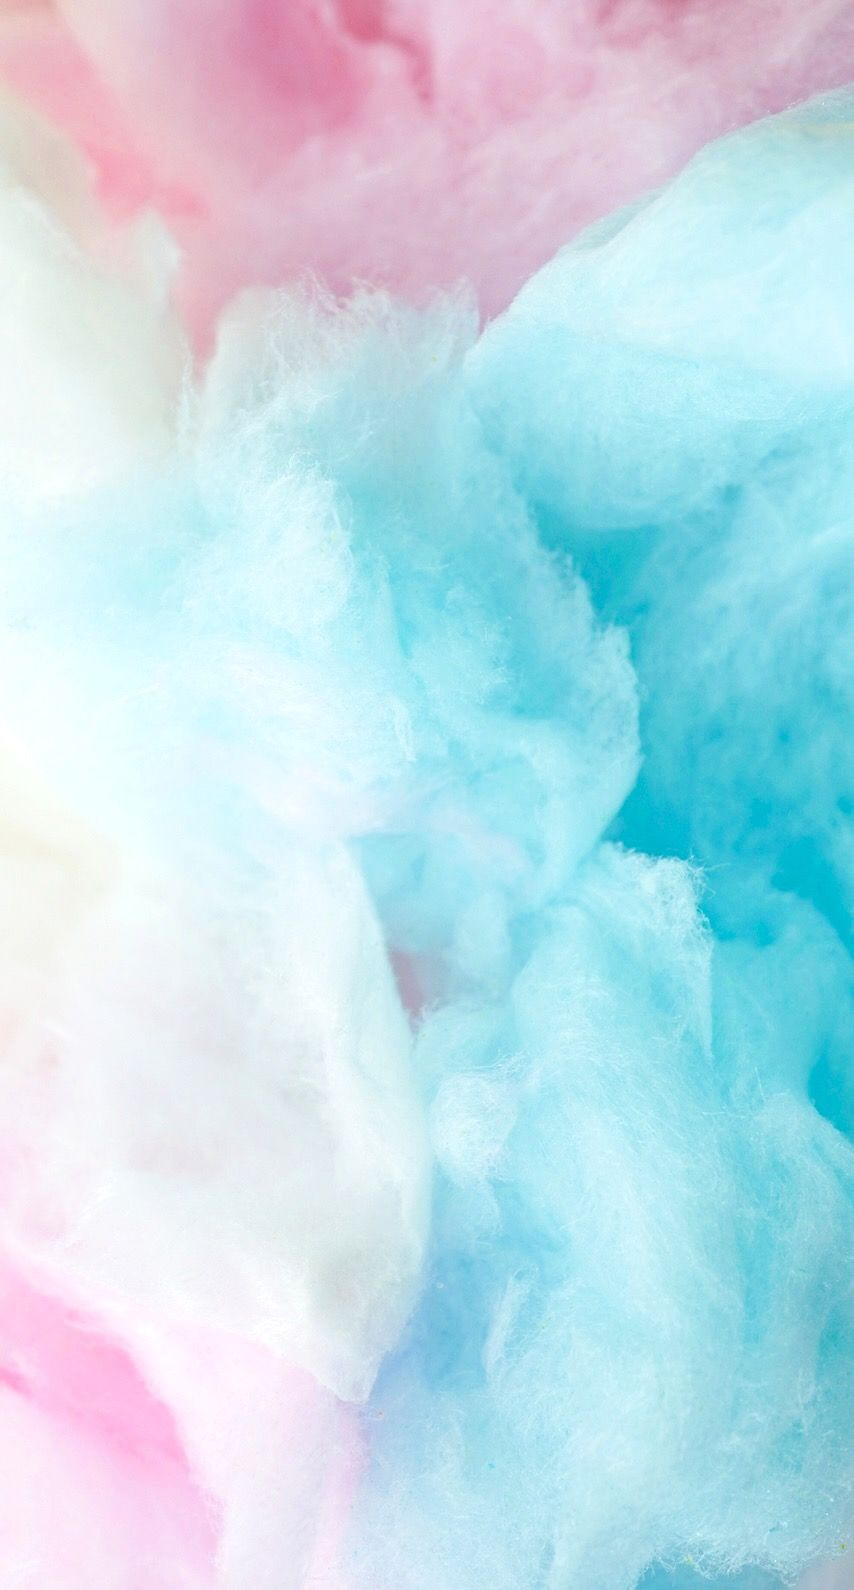 Pastel background/wallpaper | Images | Iphone wallpaper, Pastel wallpaper, Wallpaper backgrounds